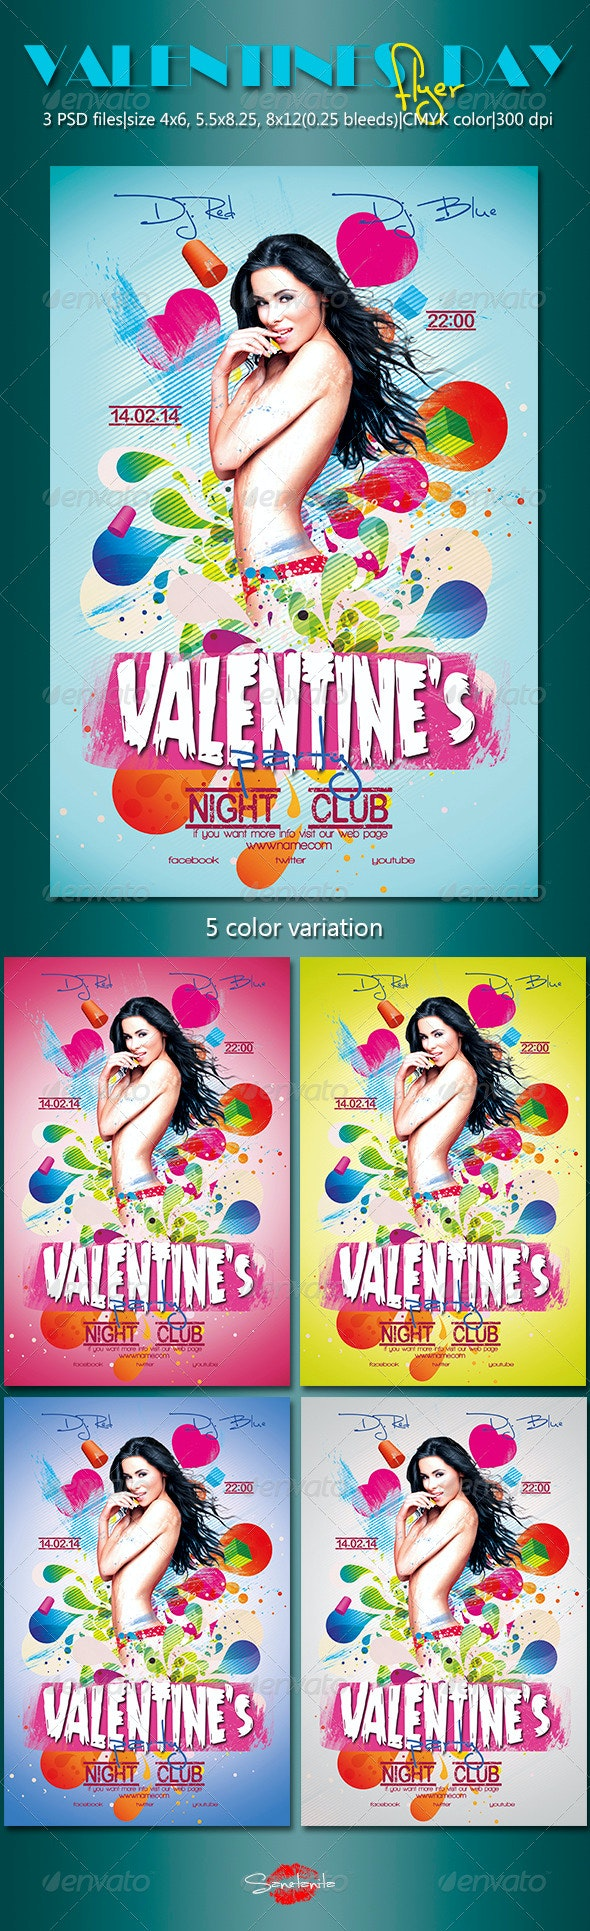 Valentine's Day Flyer 2 - Holidays Events